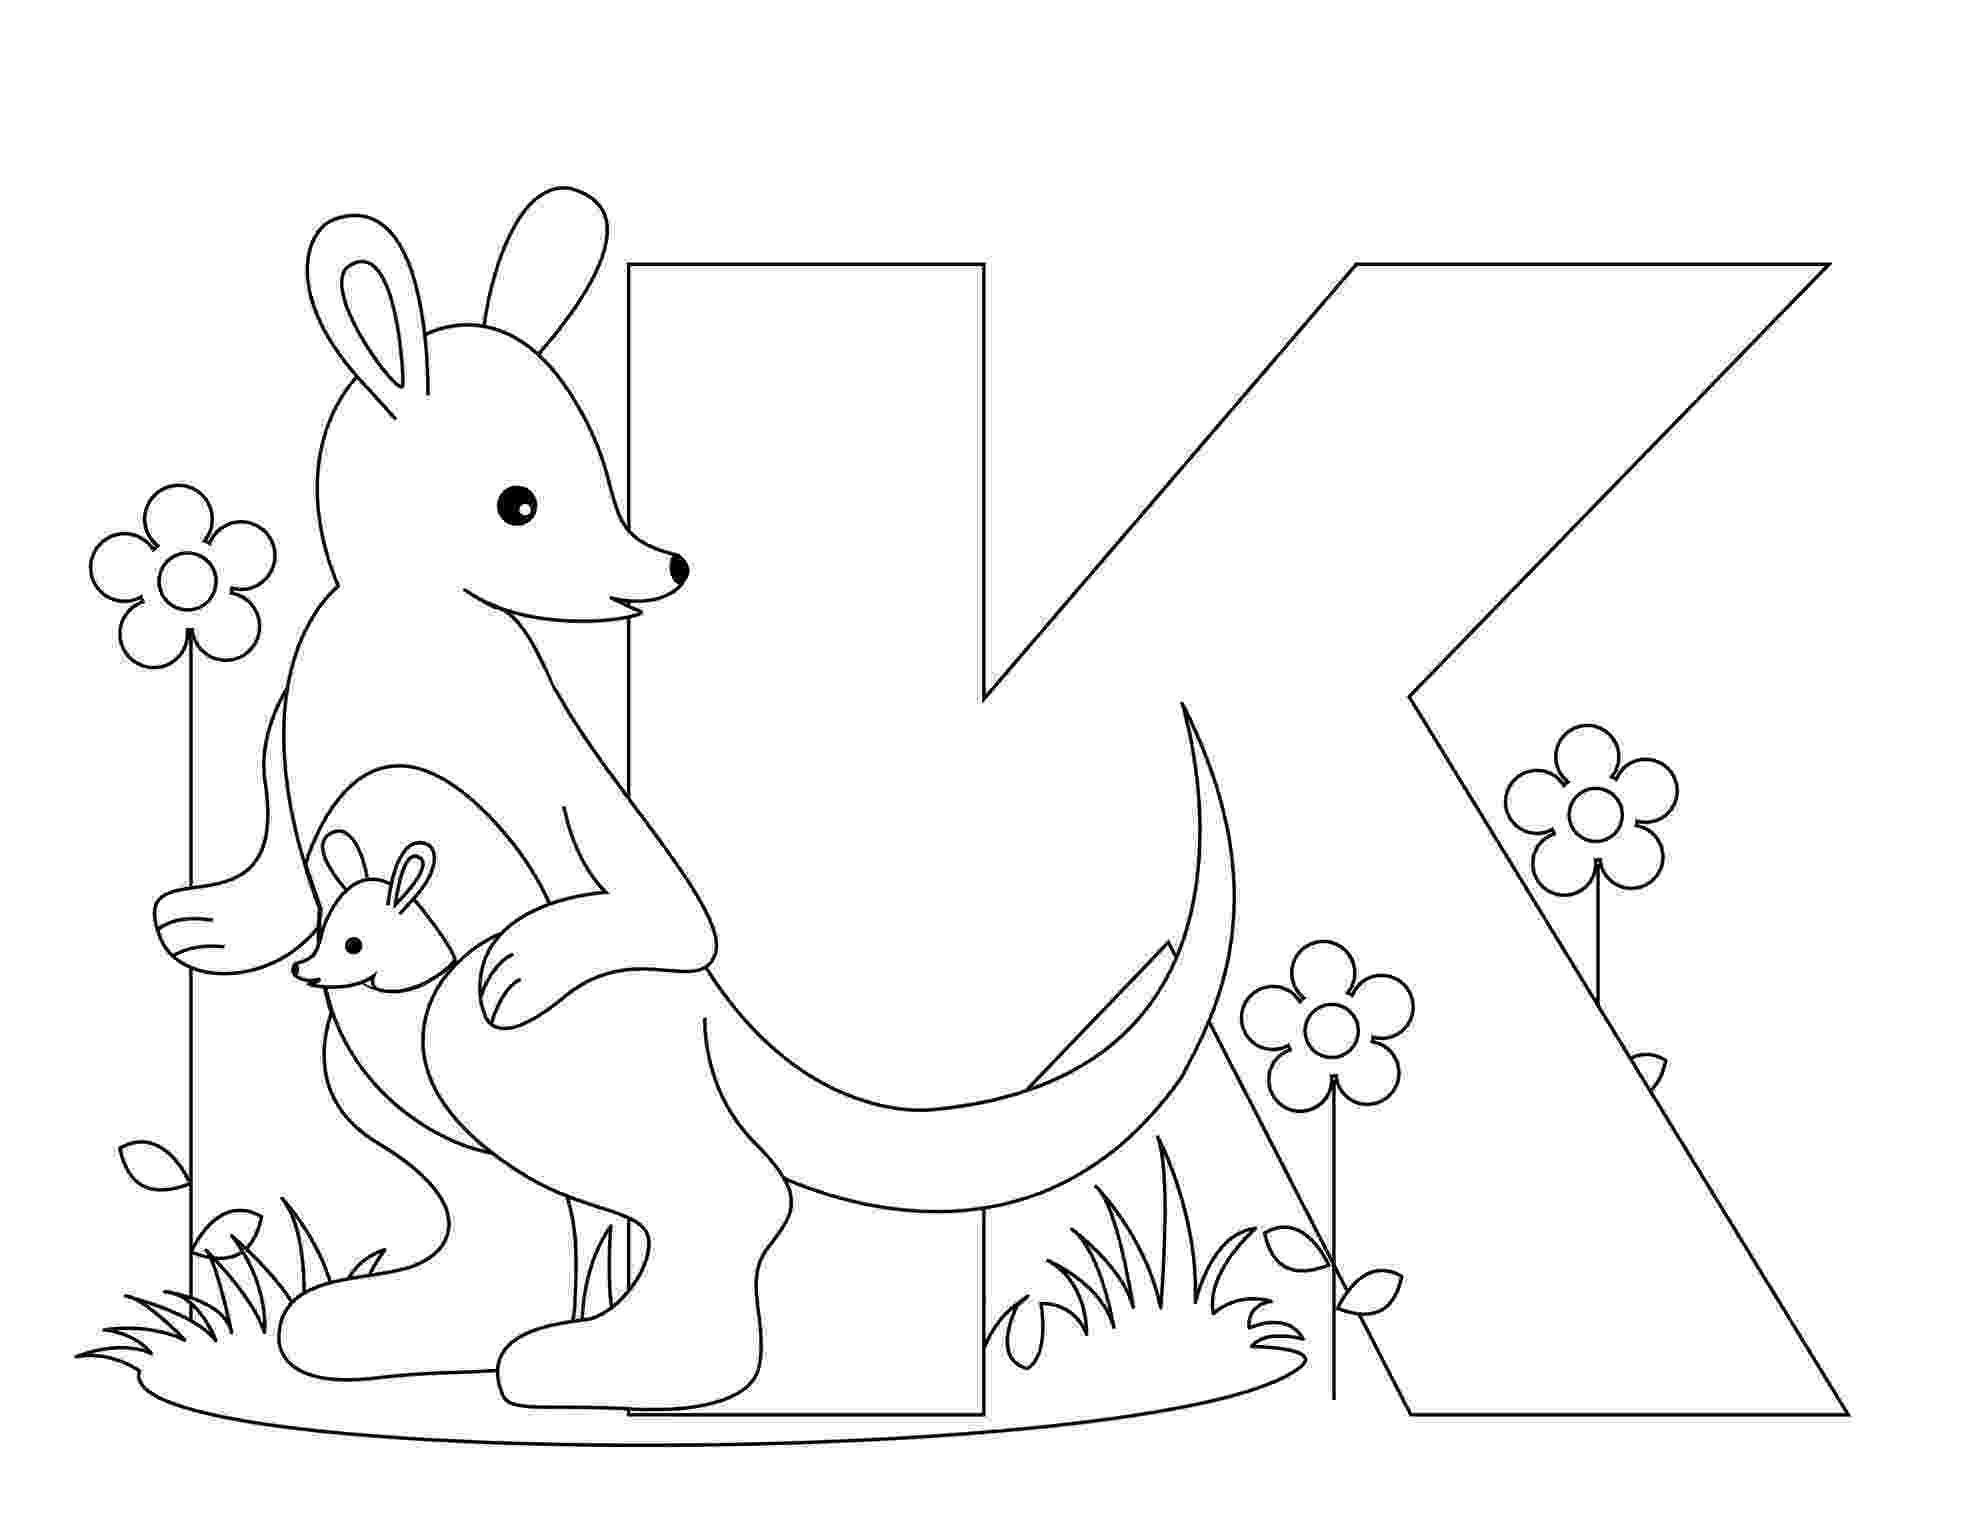 coloring pages of letters free printable alphabet coloring pages for kids best coloring letters pages of 1 1